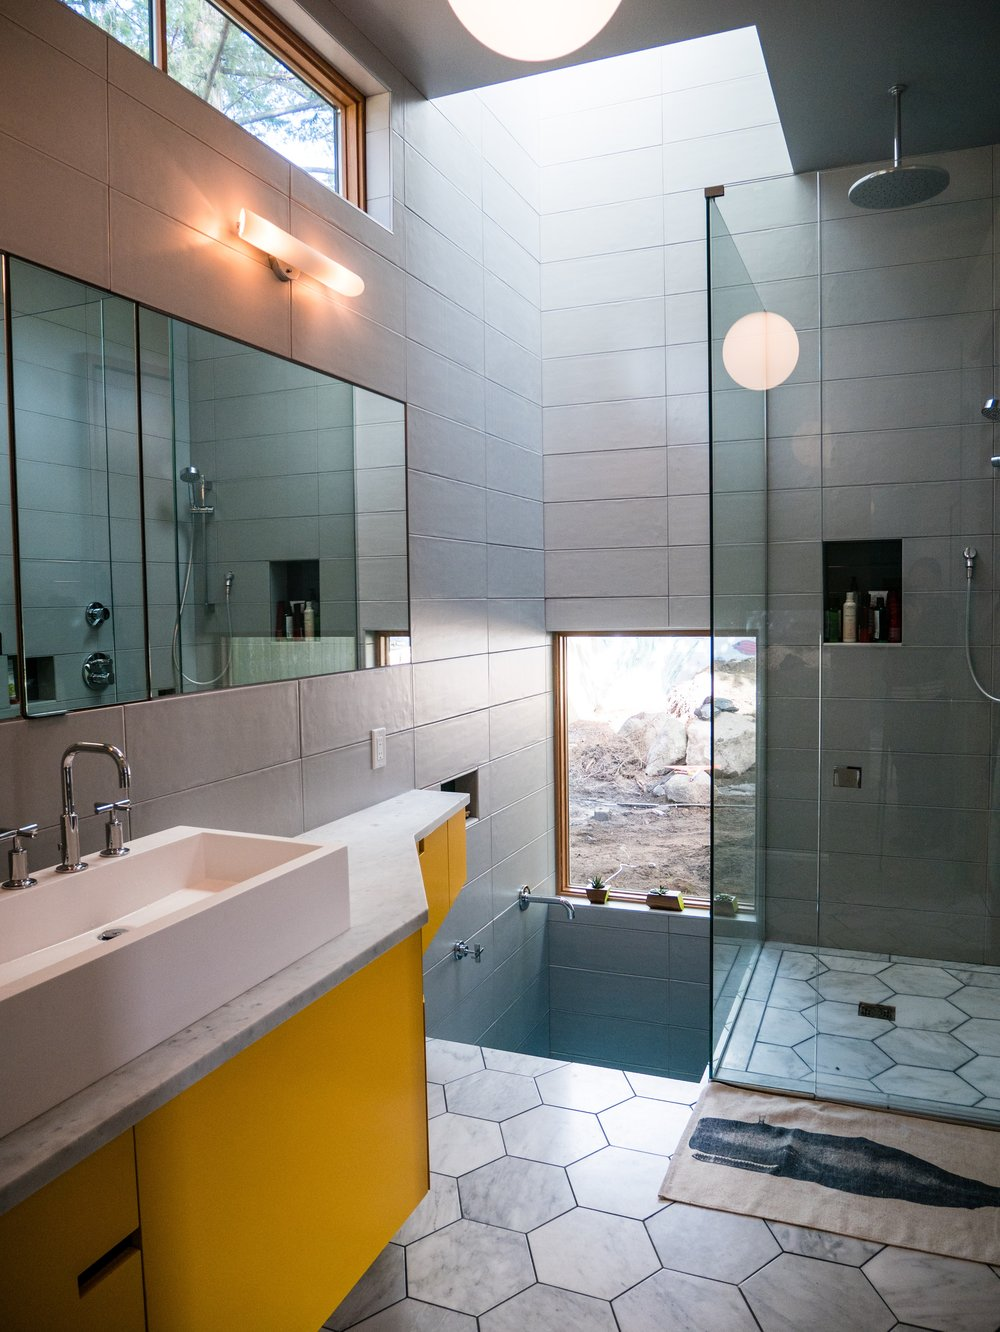 The bathroom includes a Japanese soaking tub, shower, partitioned toilet and plenty of natural light.